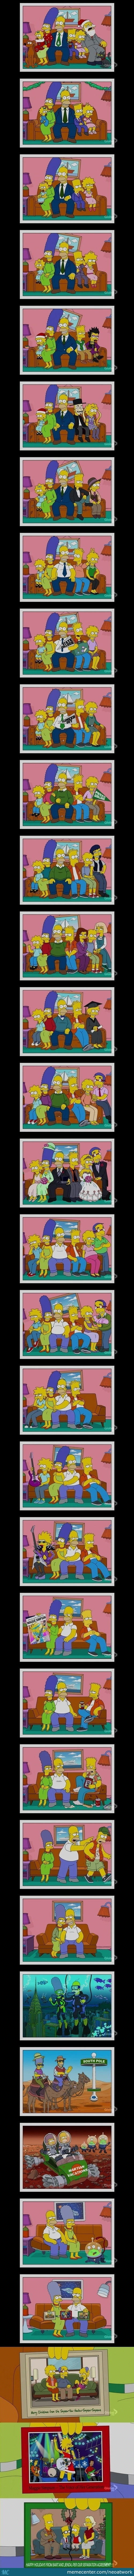 The Simpsons Evolution:best Cartoon Ever.